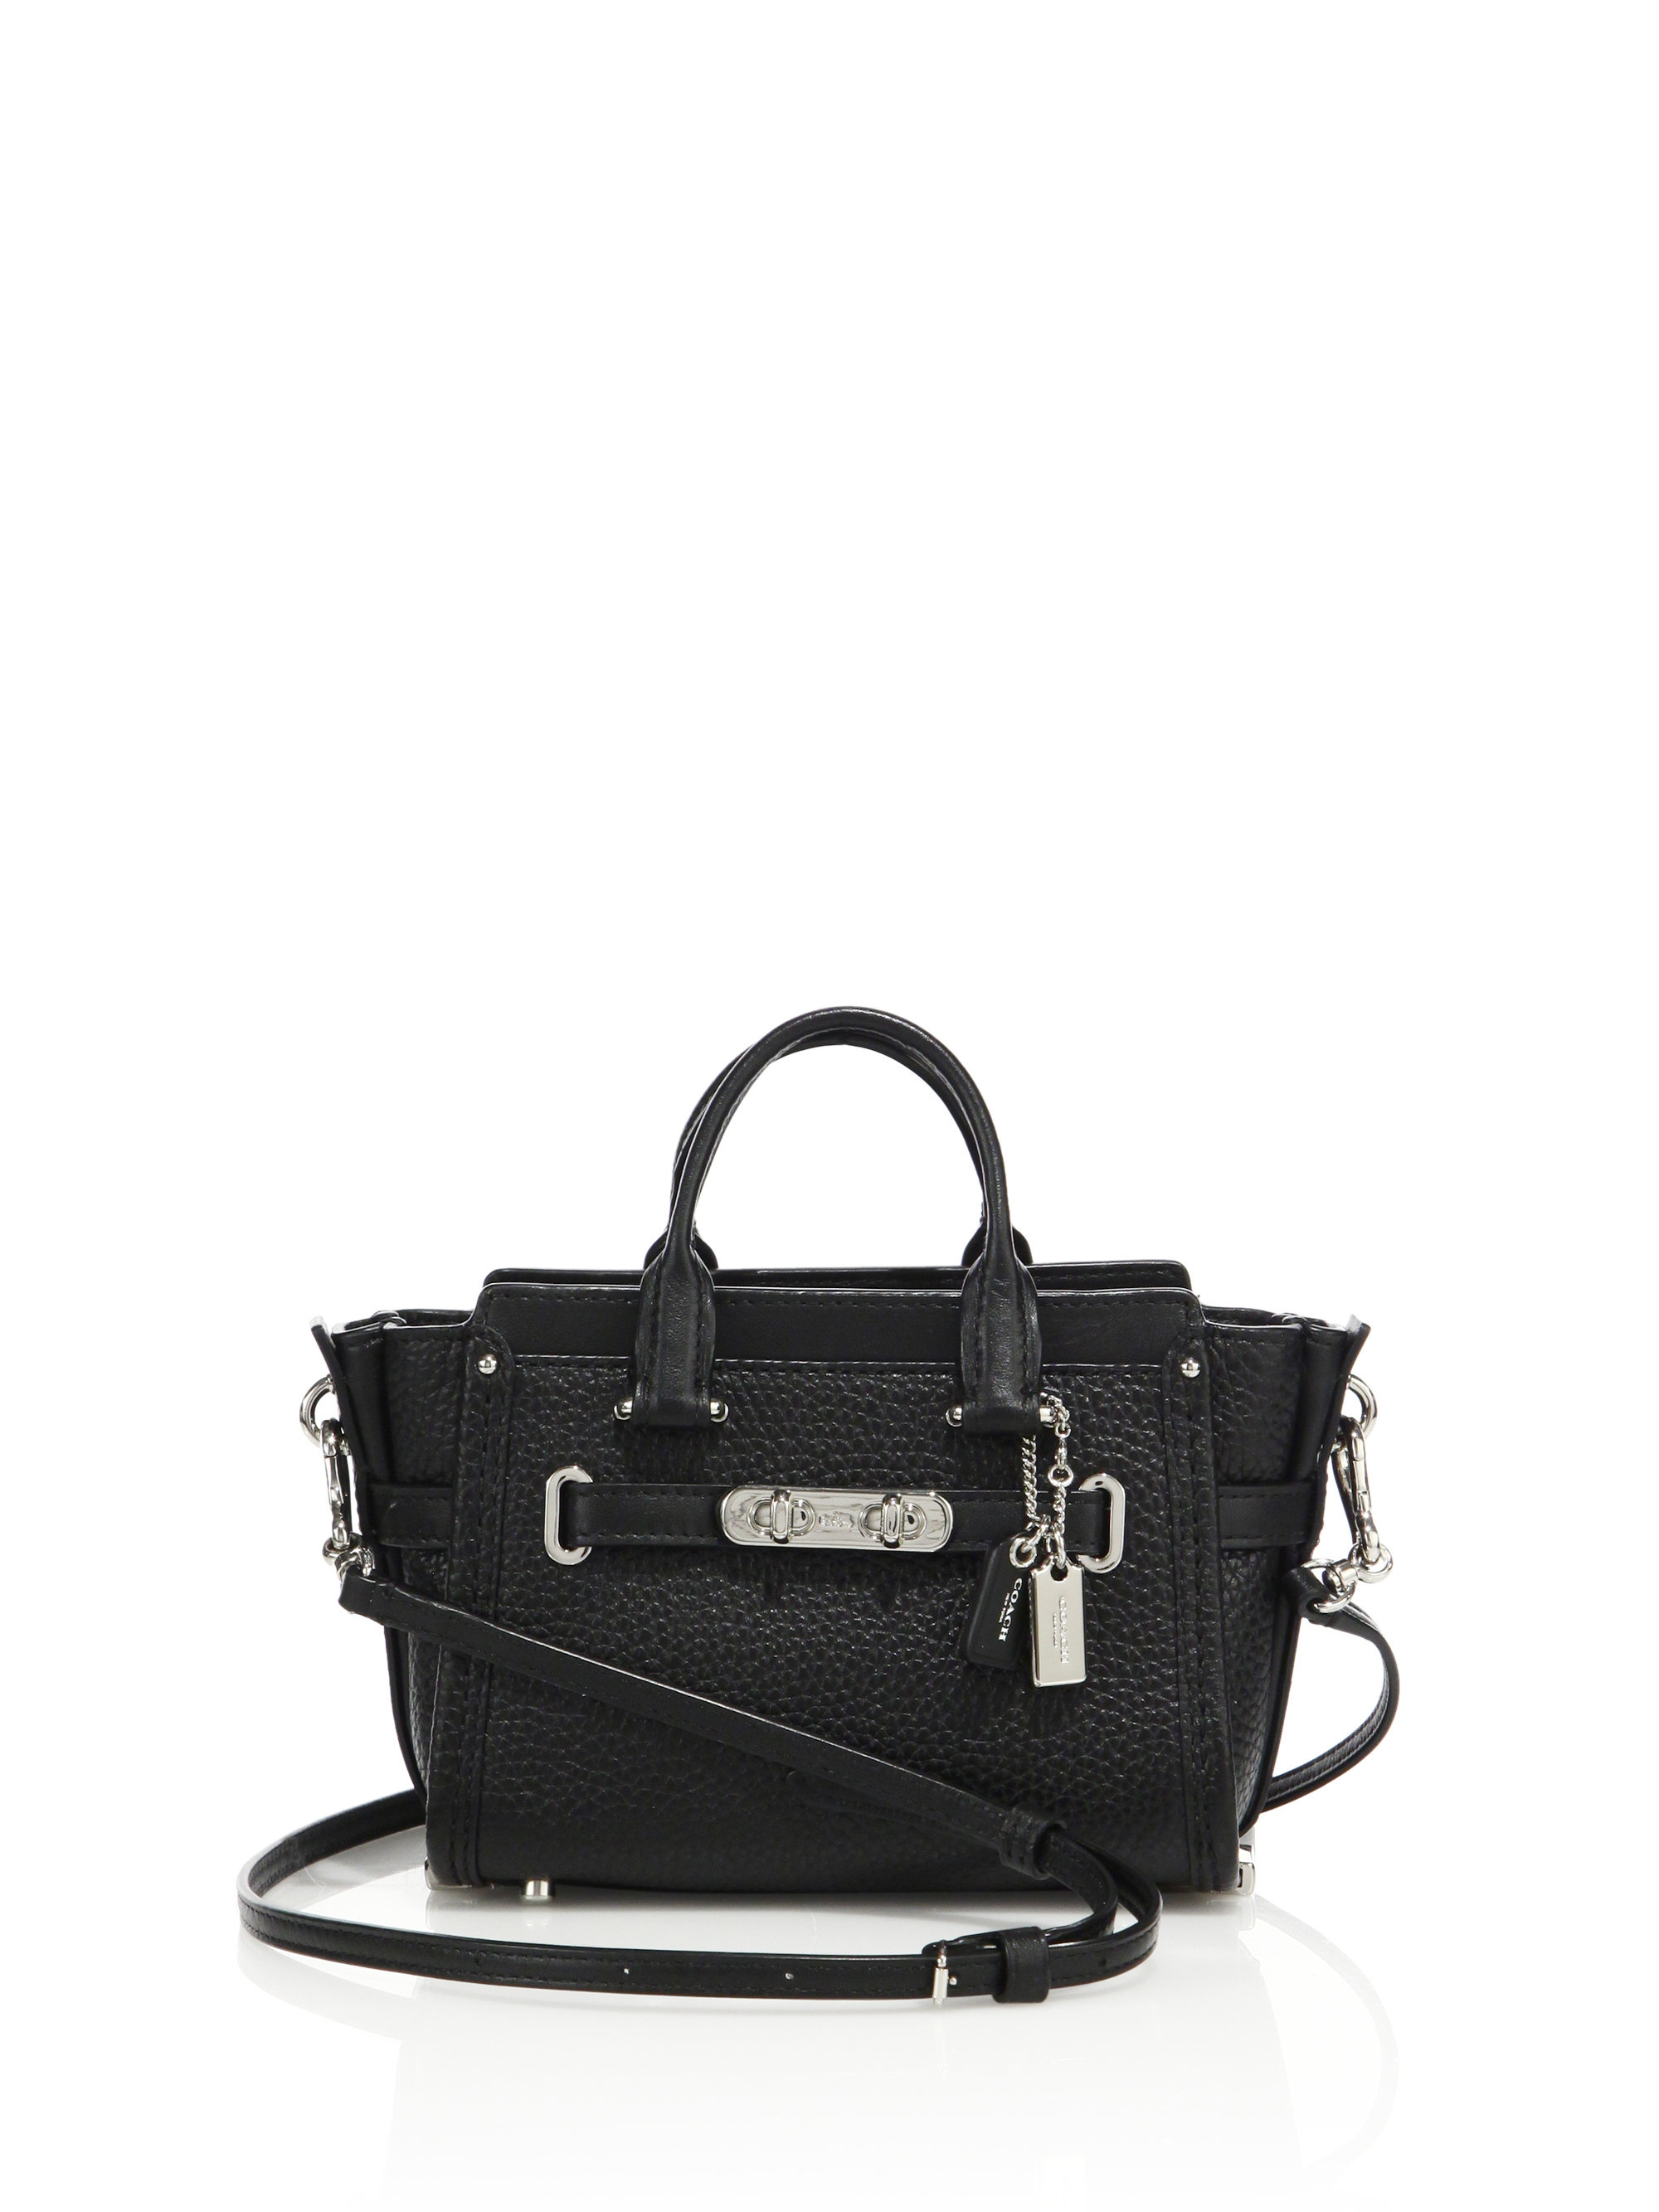 Backpackbucket bag  Coach Swagger 15 Textured Leather Satchel in Black Lyst ce59d11ed18cf